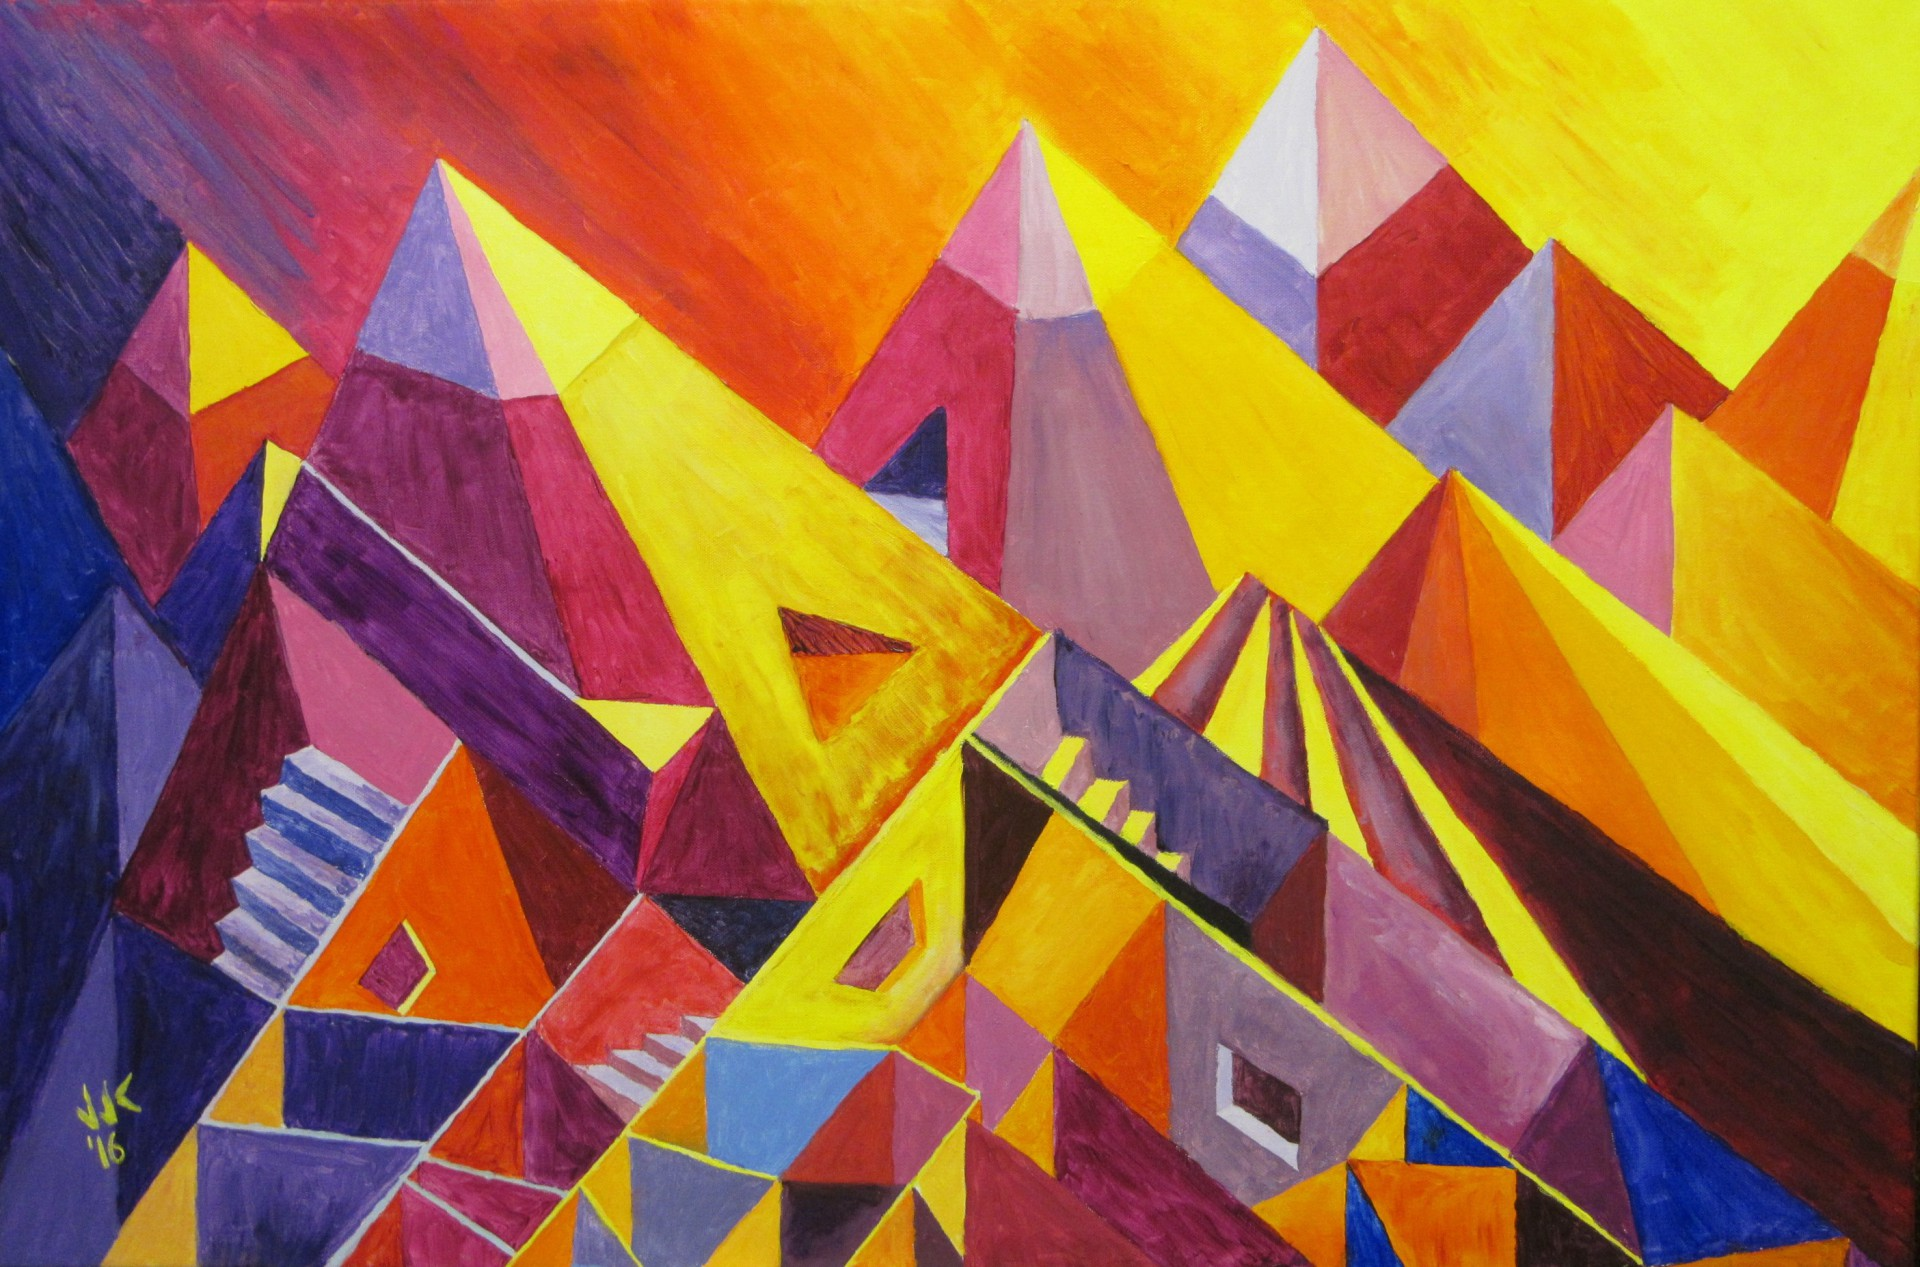 Abstract Painting of the Rocky Mountains with sunrise and sunset colors.